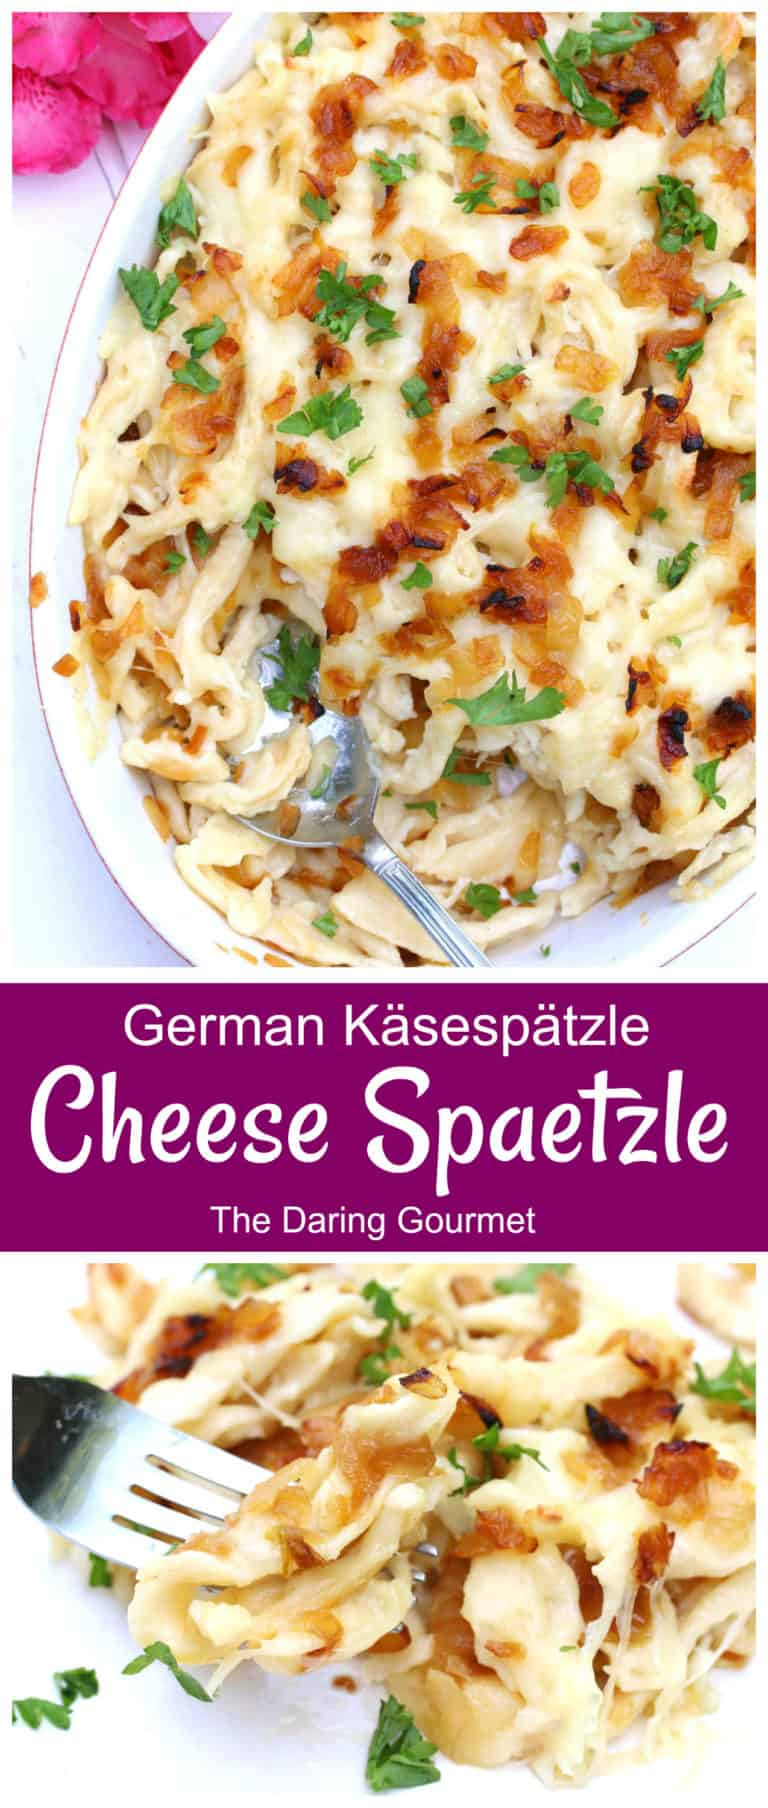 kasespatzle recipe authentic traditional cheese spaetzle